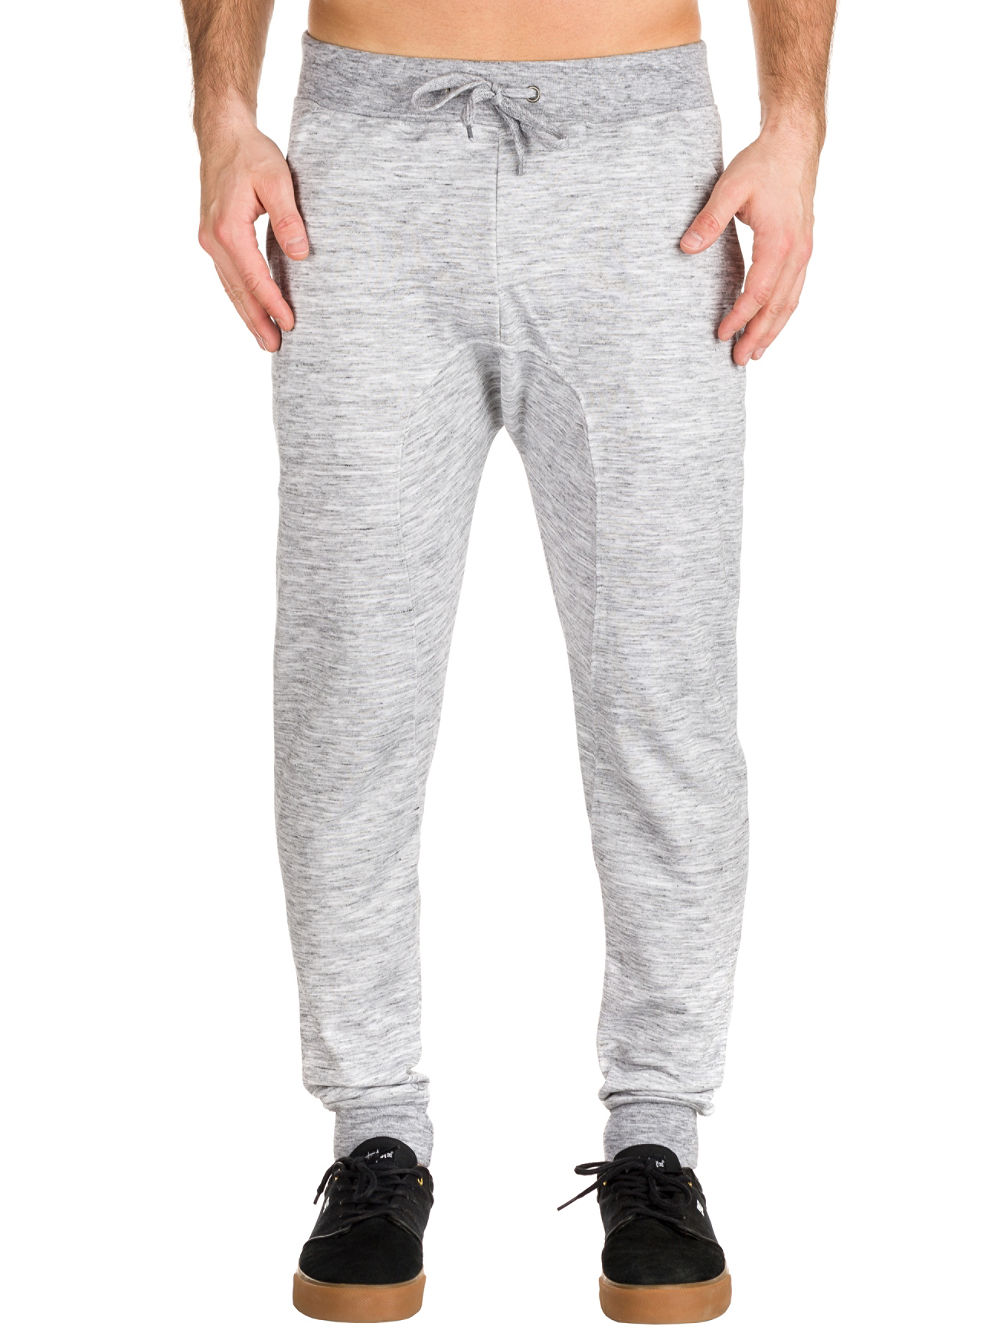 Covert Knit Jogger Pants